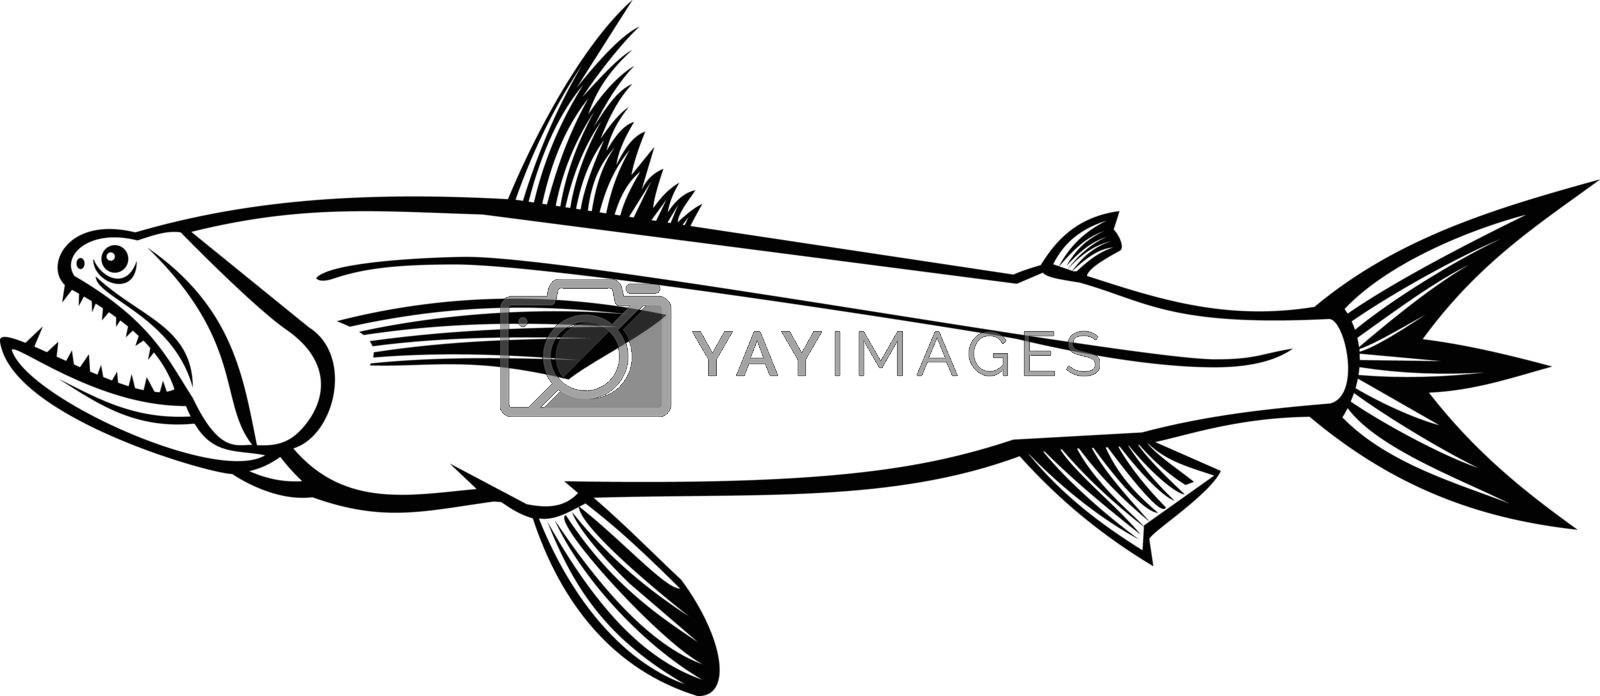 Stencil illustration of a Bombay duck fish, Harpadon nehereus, bummalo, bombil, boomla or strange fish, a species of lizardfish, viewed from side on isolated background in black and white retro style.